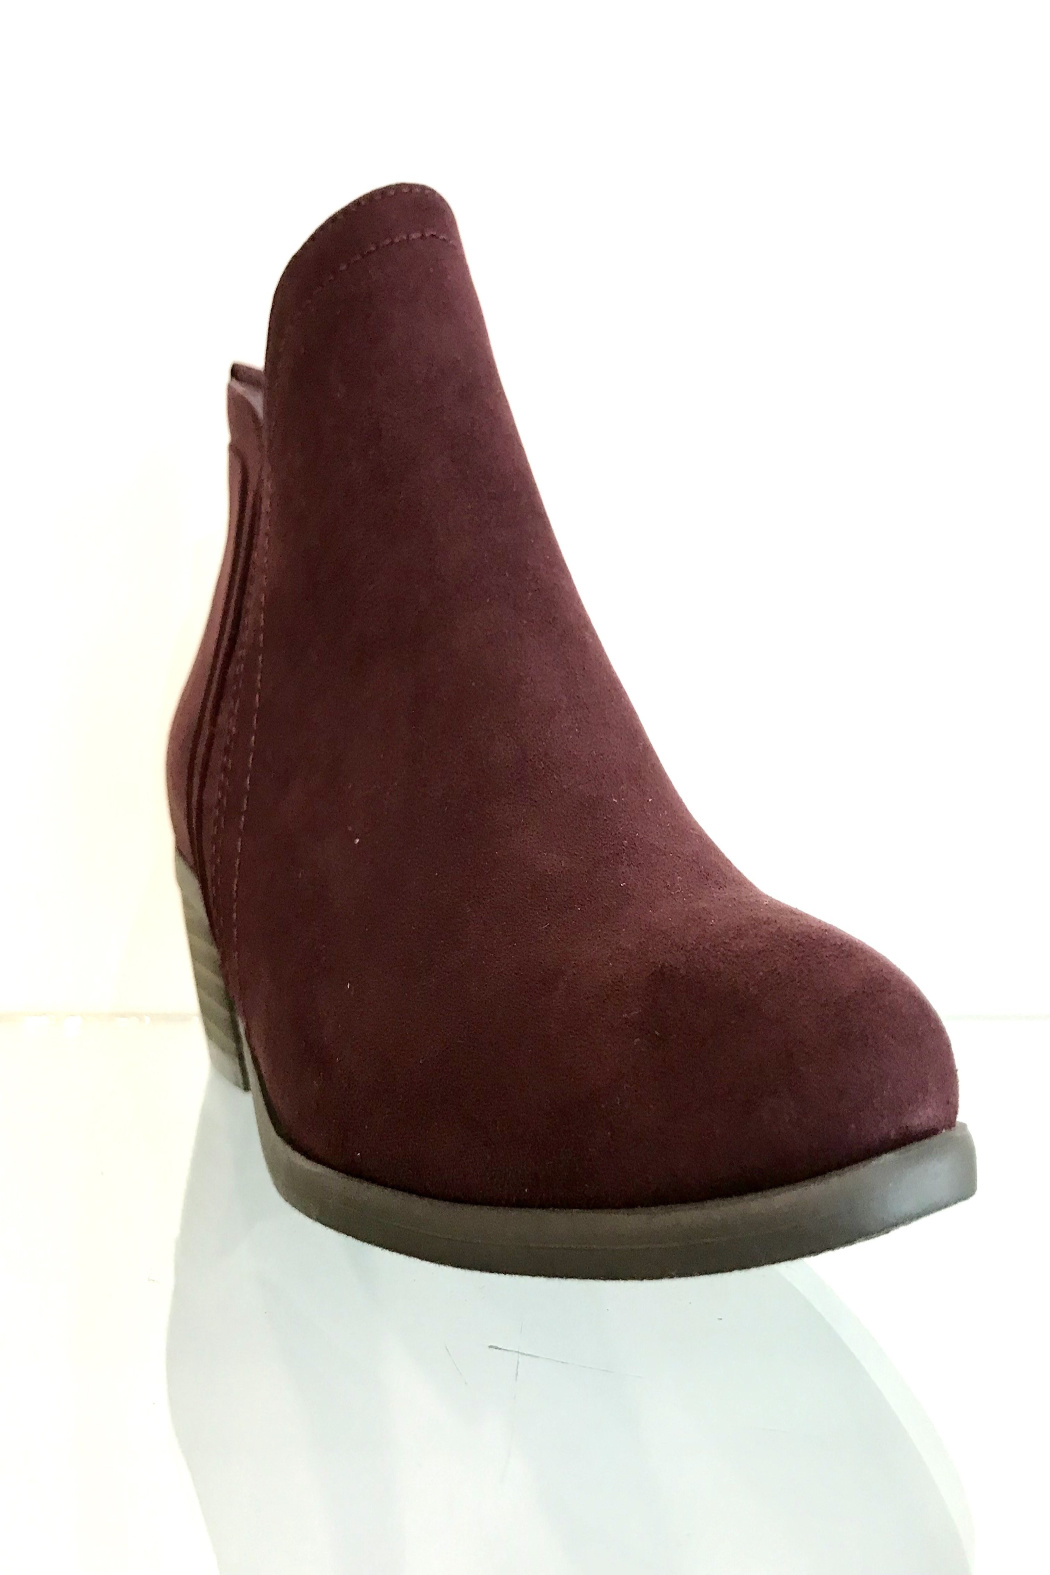 CONSOLIDATED SHOE CO Poet Suede Bootie - Front Full Image